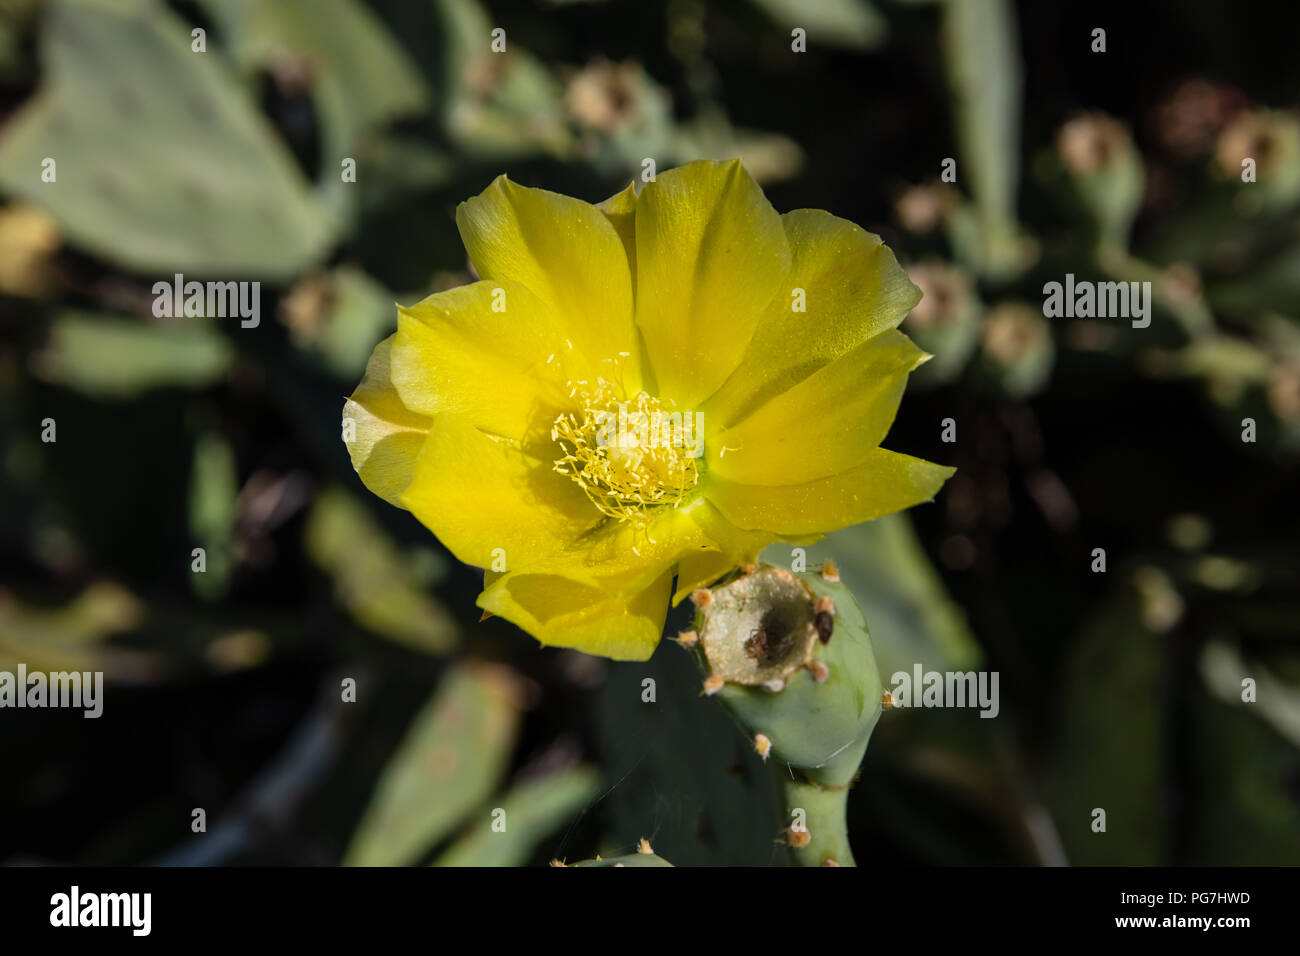 Close up of prickle pear cactus flower on a blurry background, wallpaper. - Stock Image